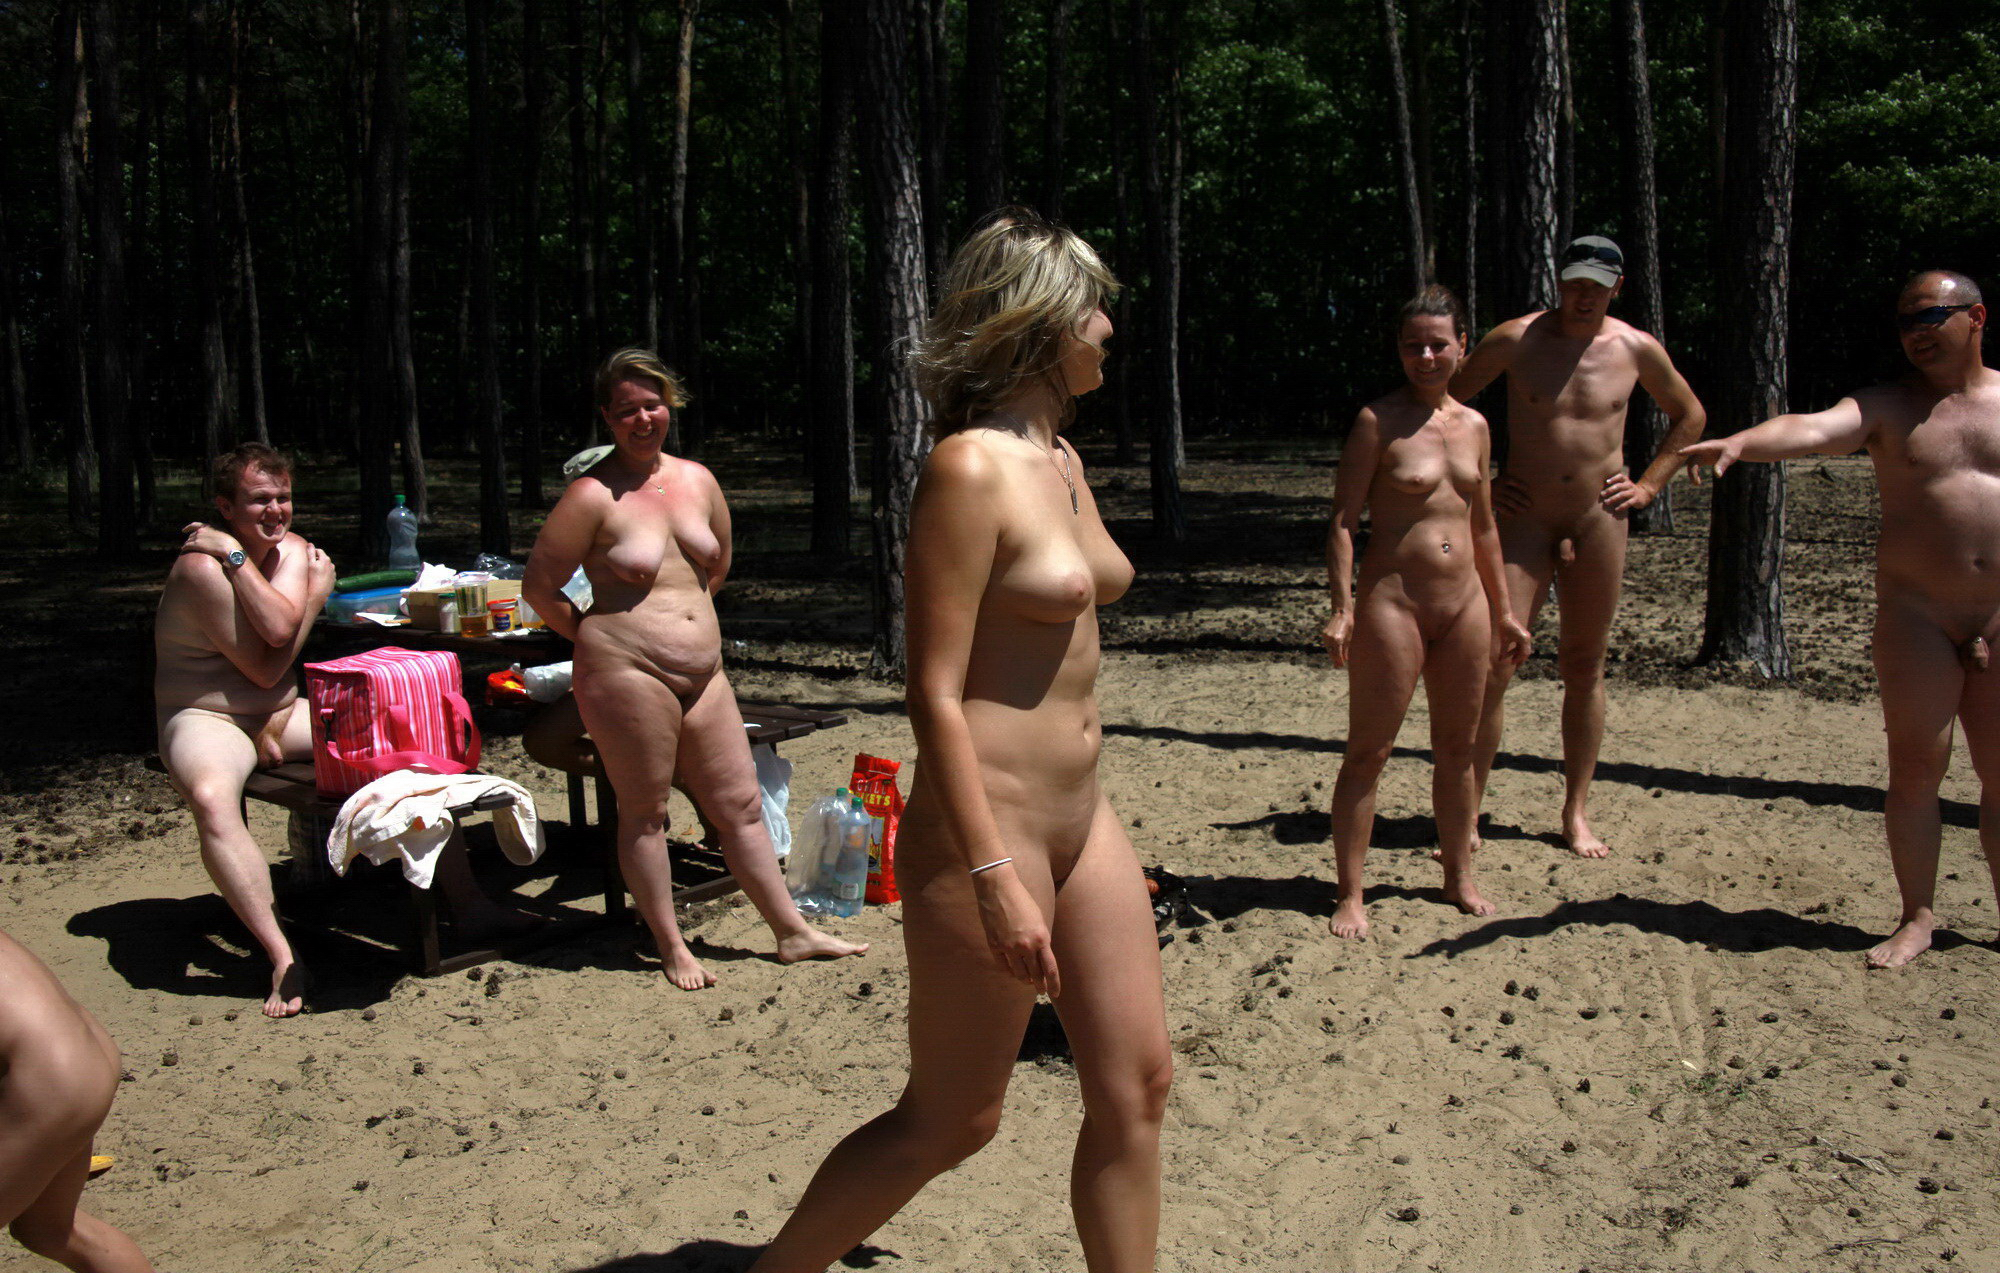 https://voyeurpapa.com/wp-content/uploads/2016/12/Nudists-family-nude-beach-32.jpg